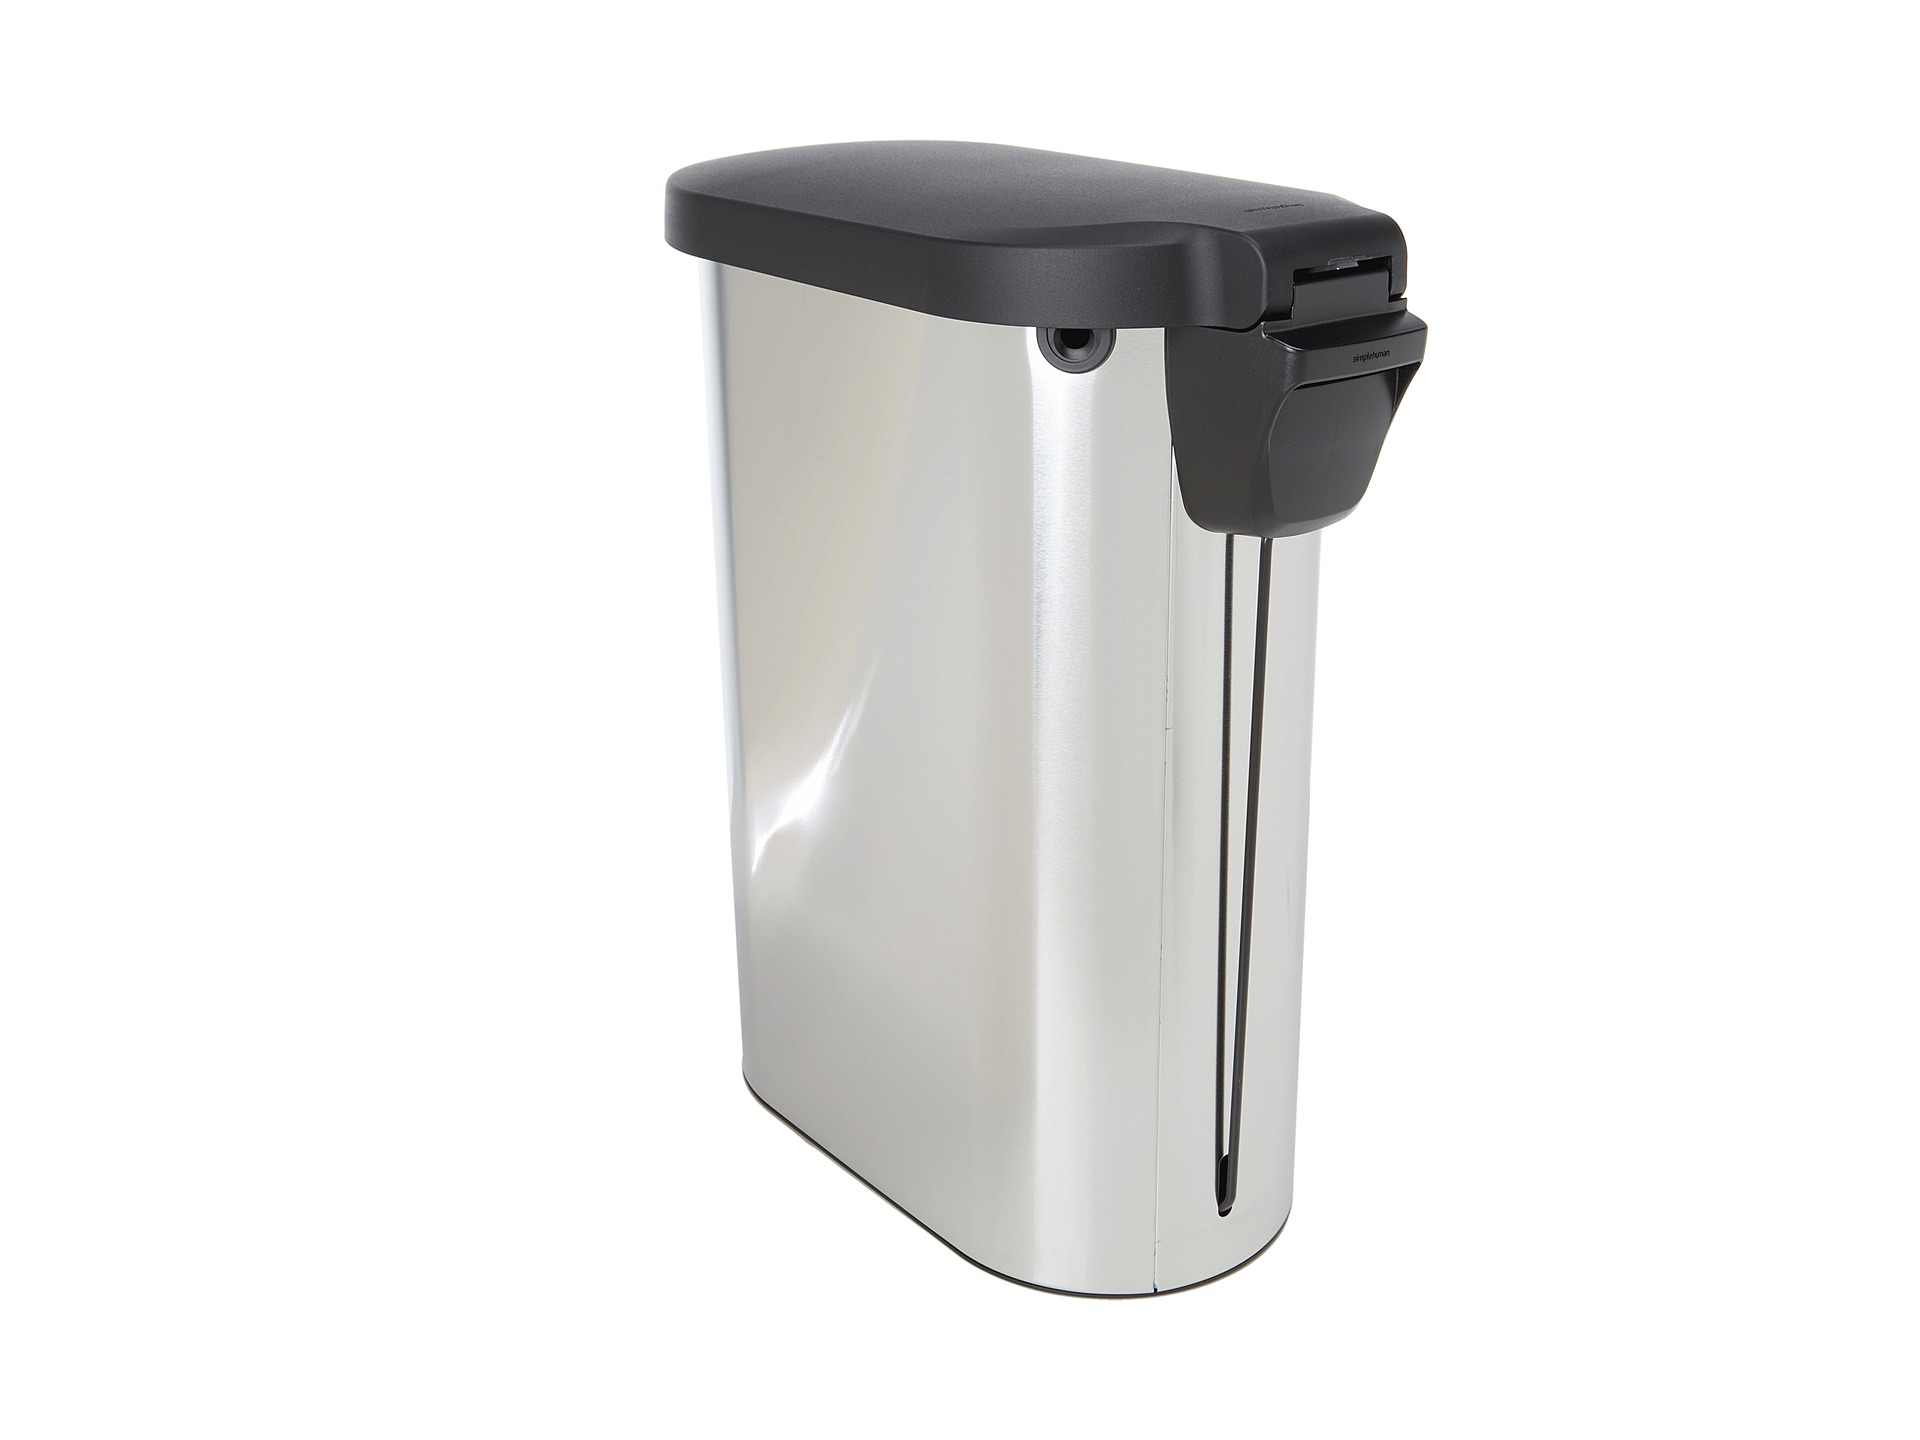 Simplehuman 45l slim step trash can w plastic lid fingerprint proof shipped free at zappos - Slim garbage cans for kitchen ...